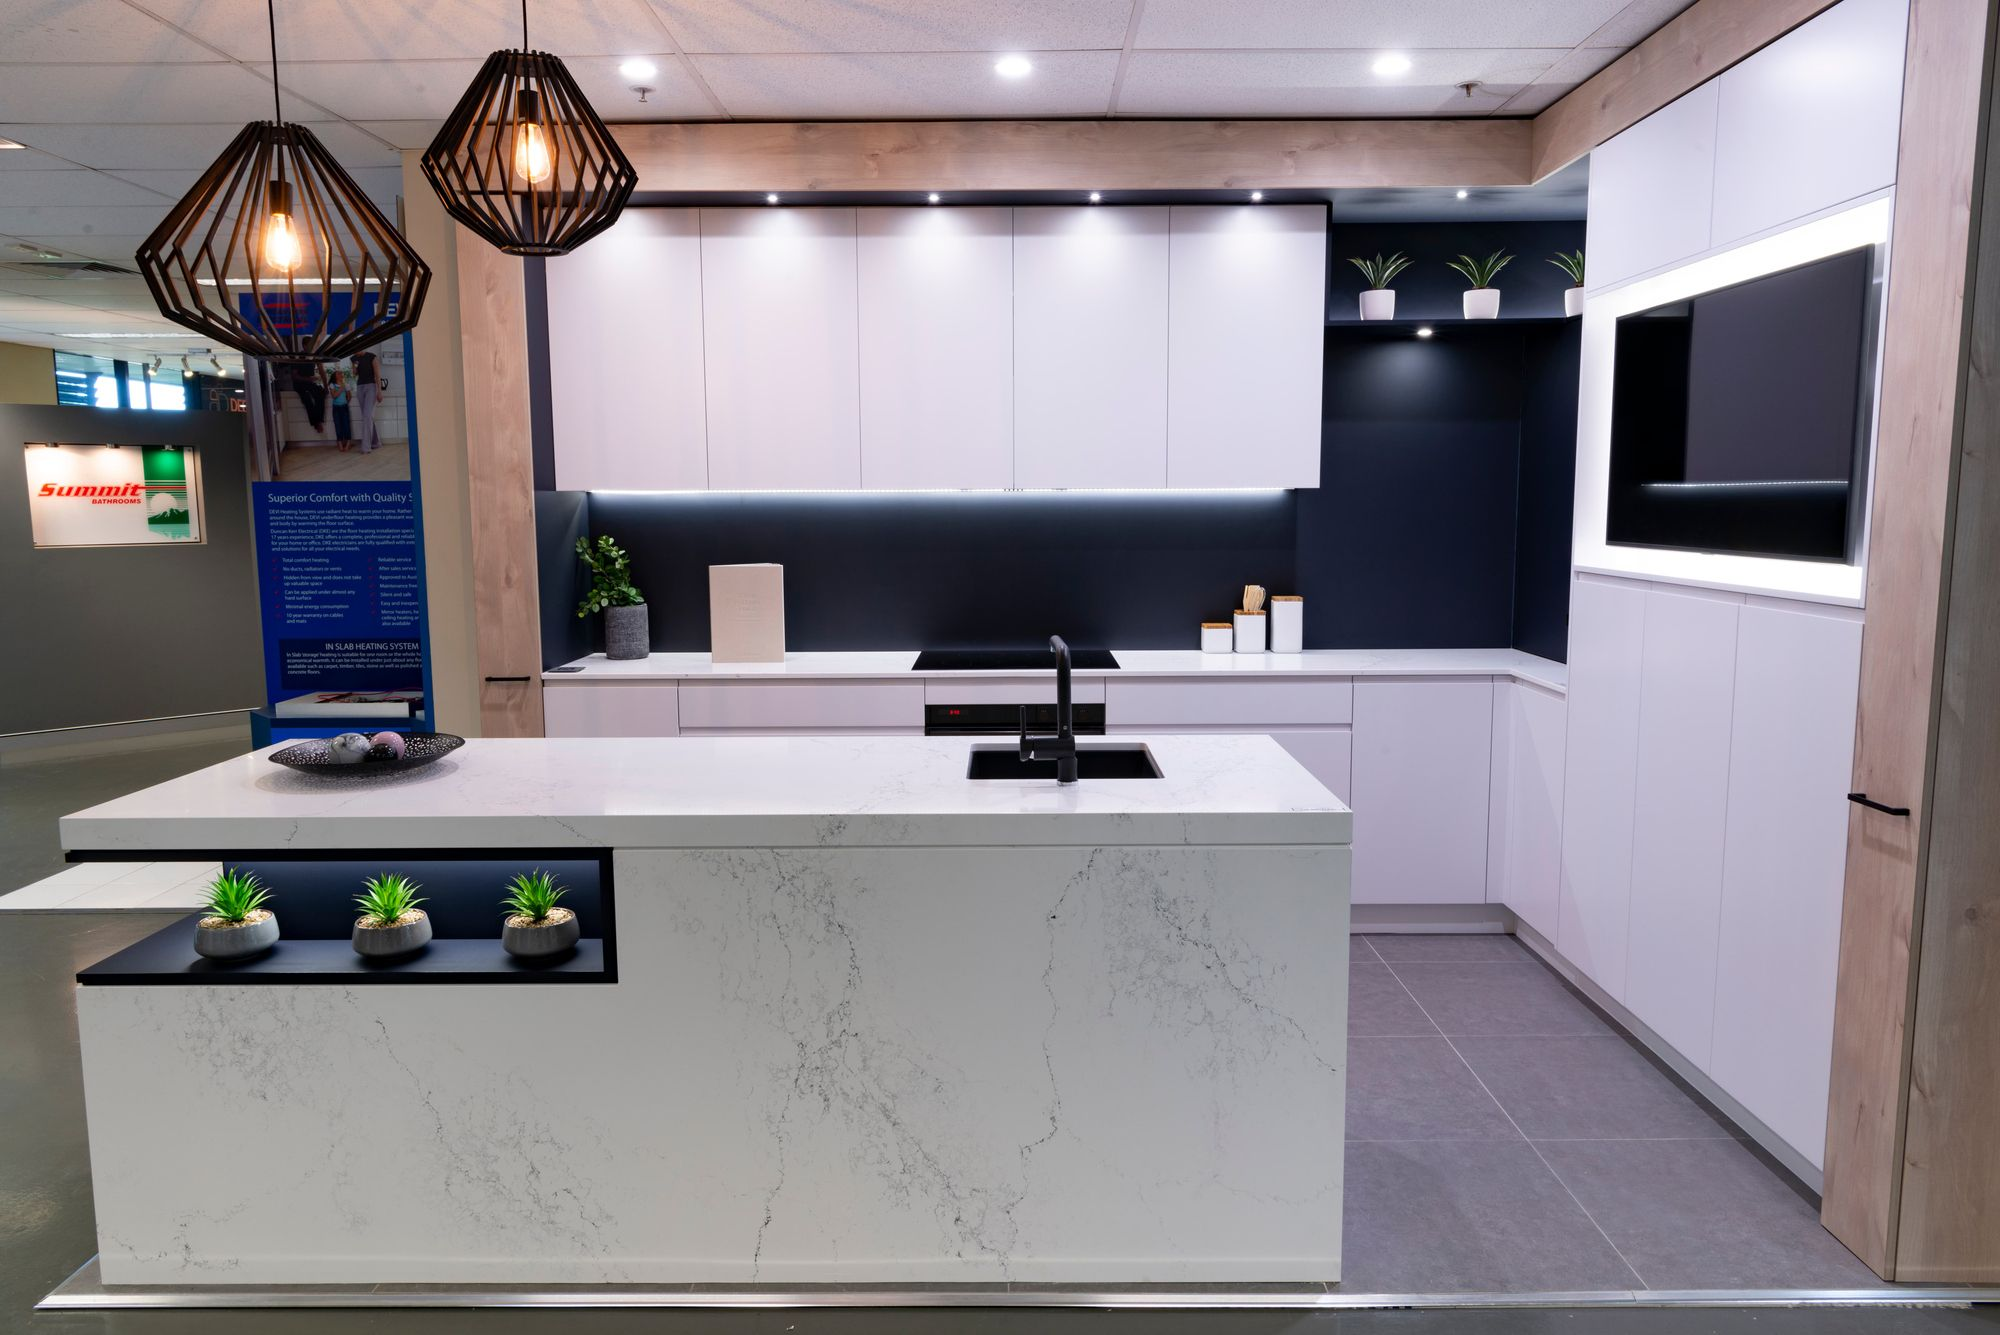 Kitchens For Living Create A Beautiful White Kitchen Design For